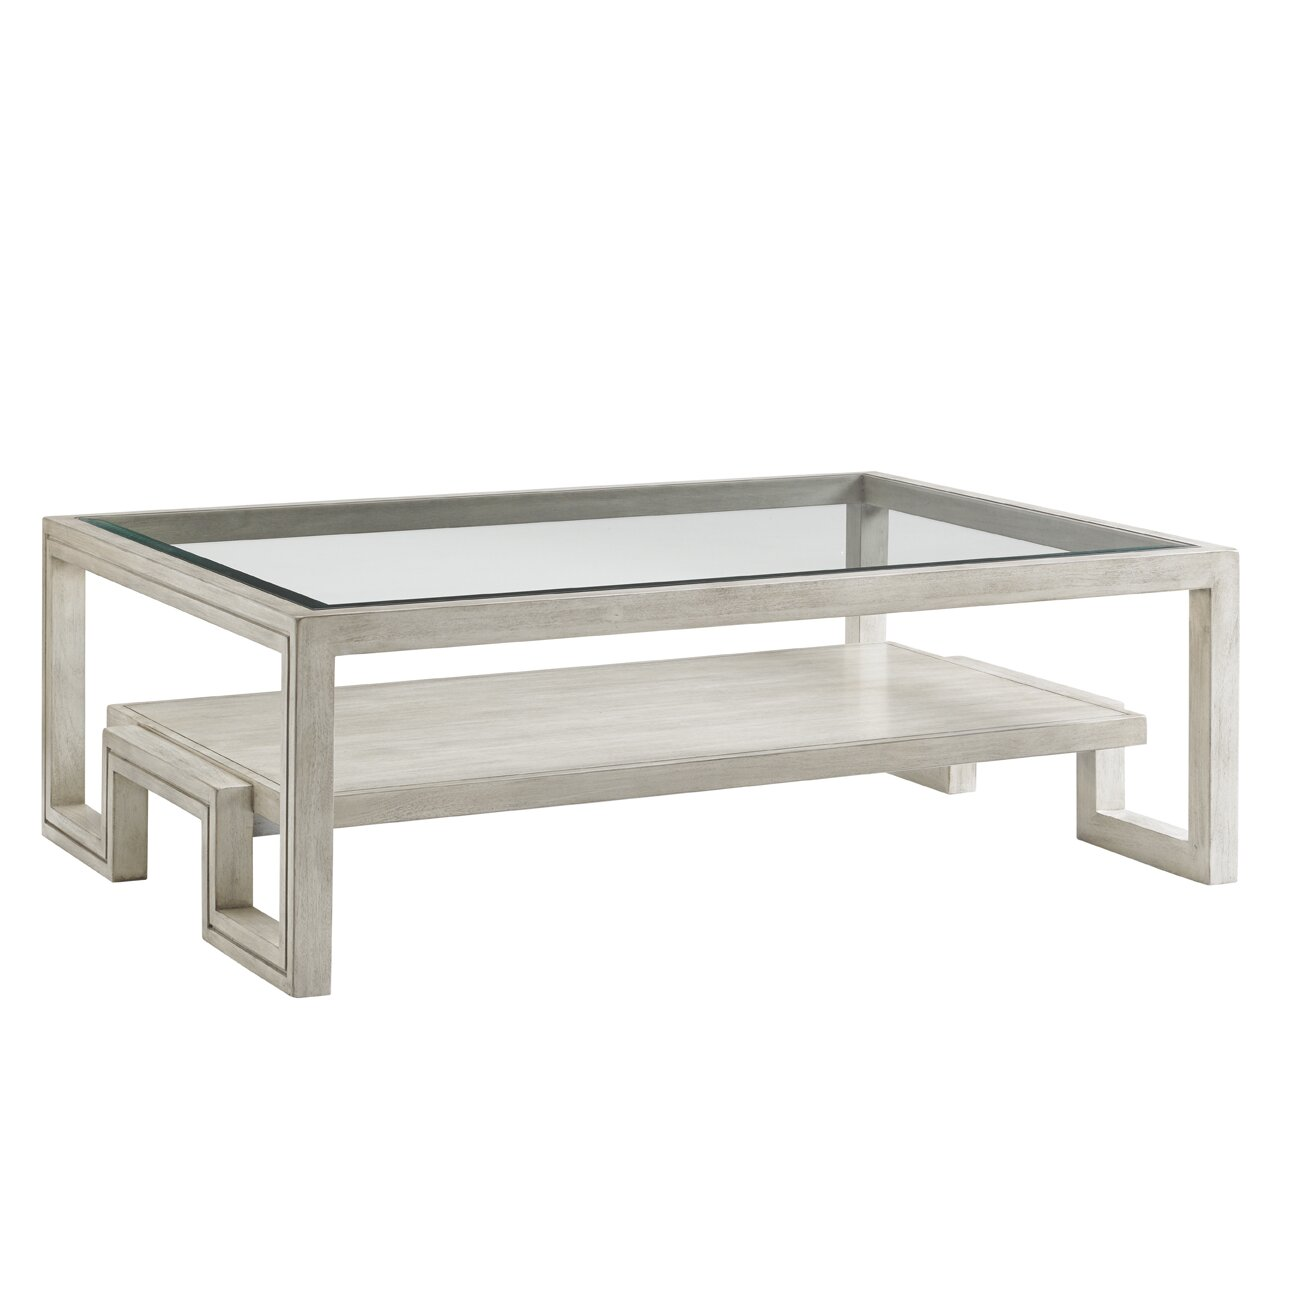 Lexington Oyster Bay Coffee Table Reviews Wayfair